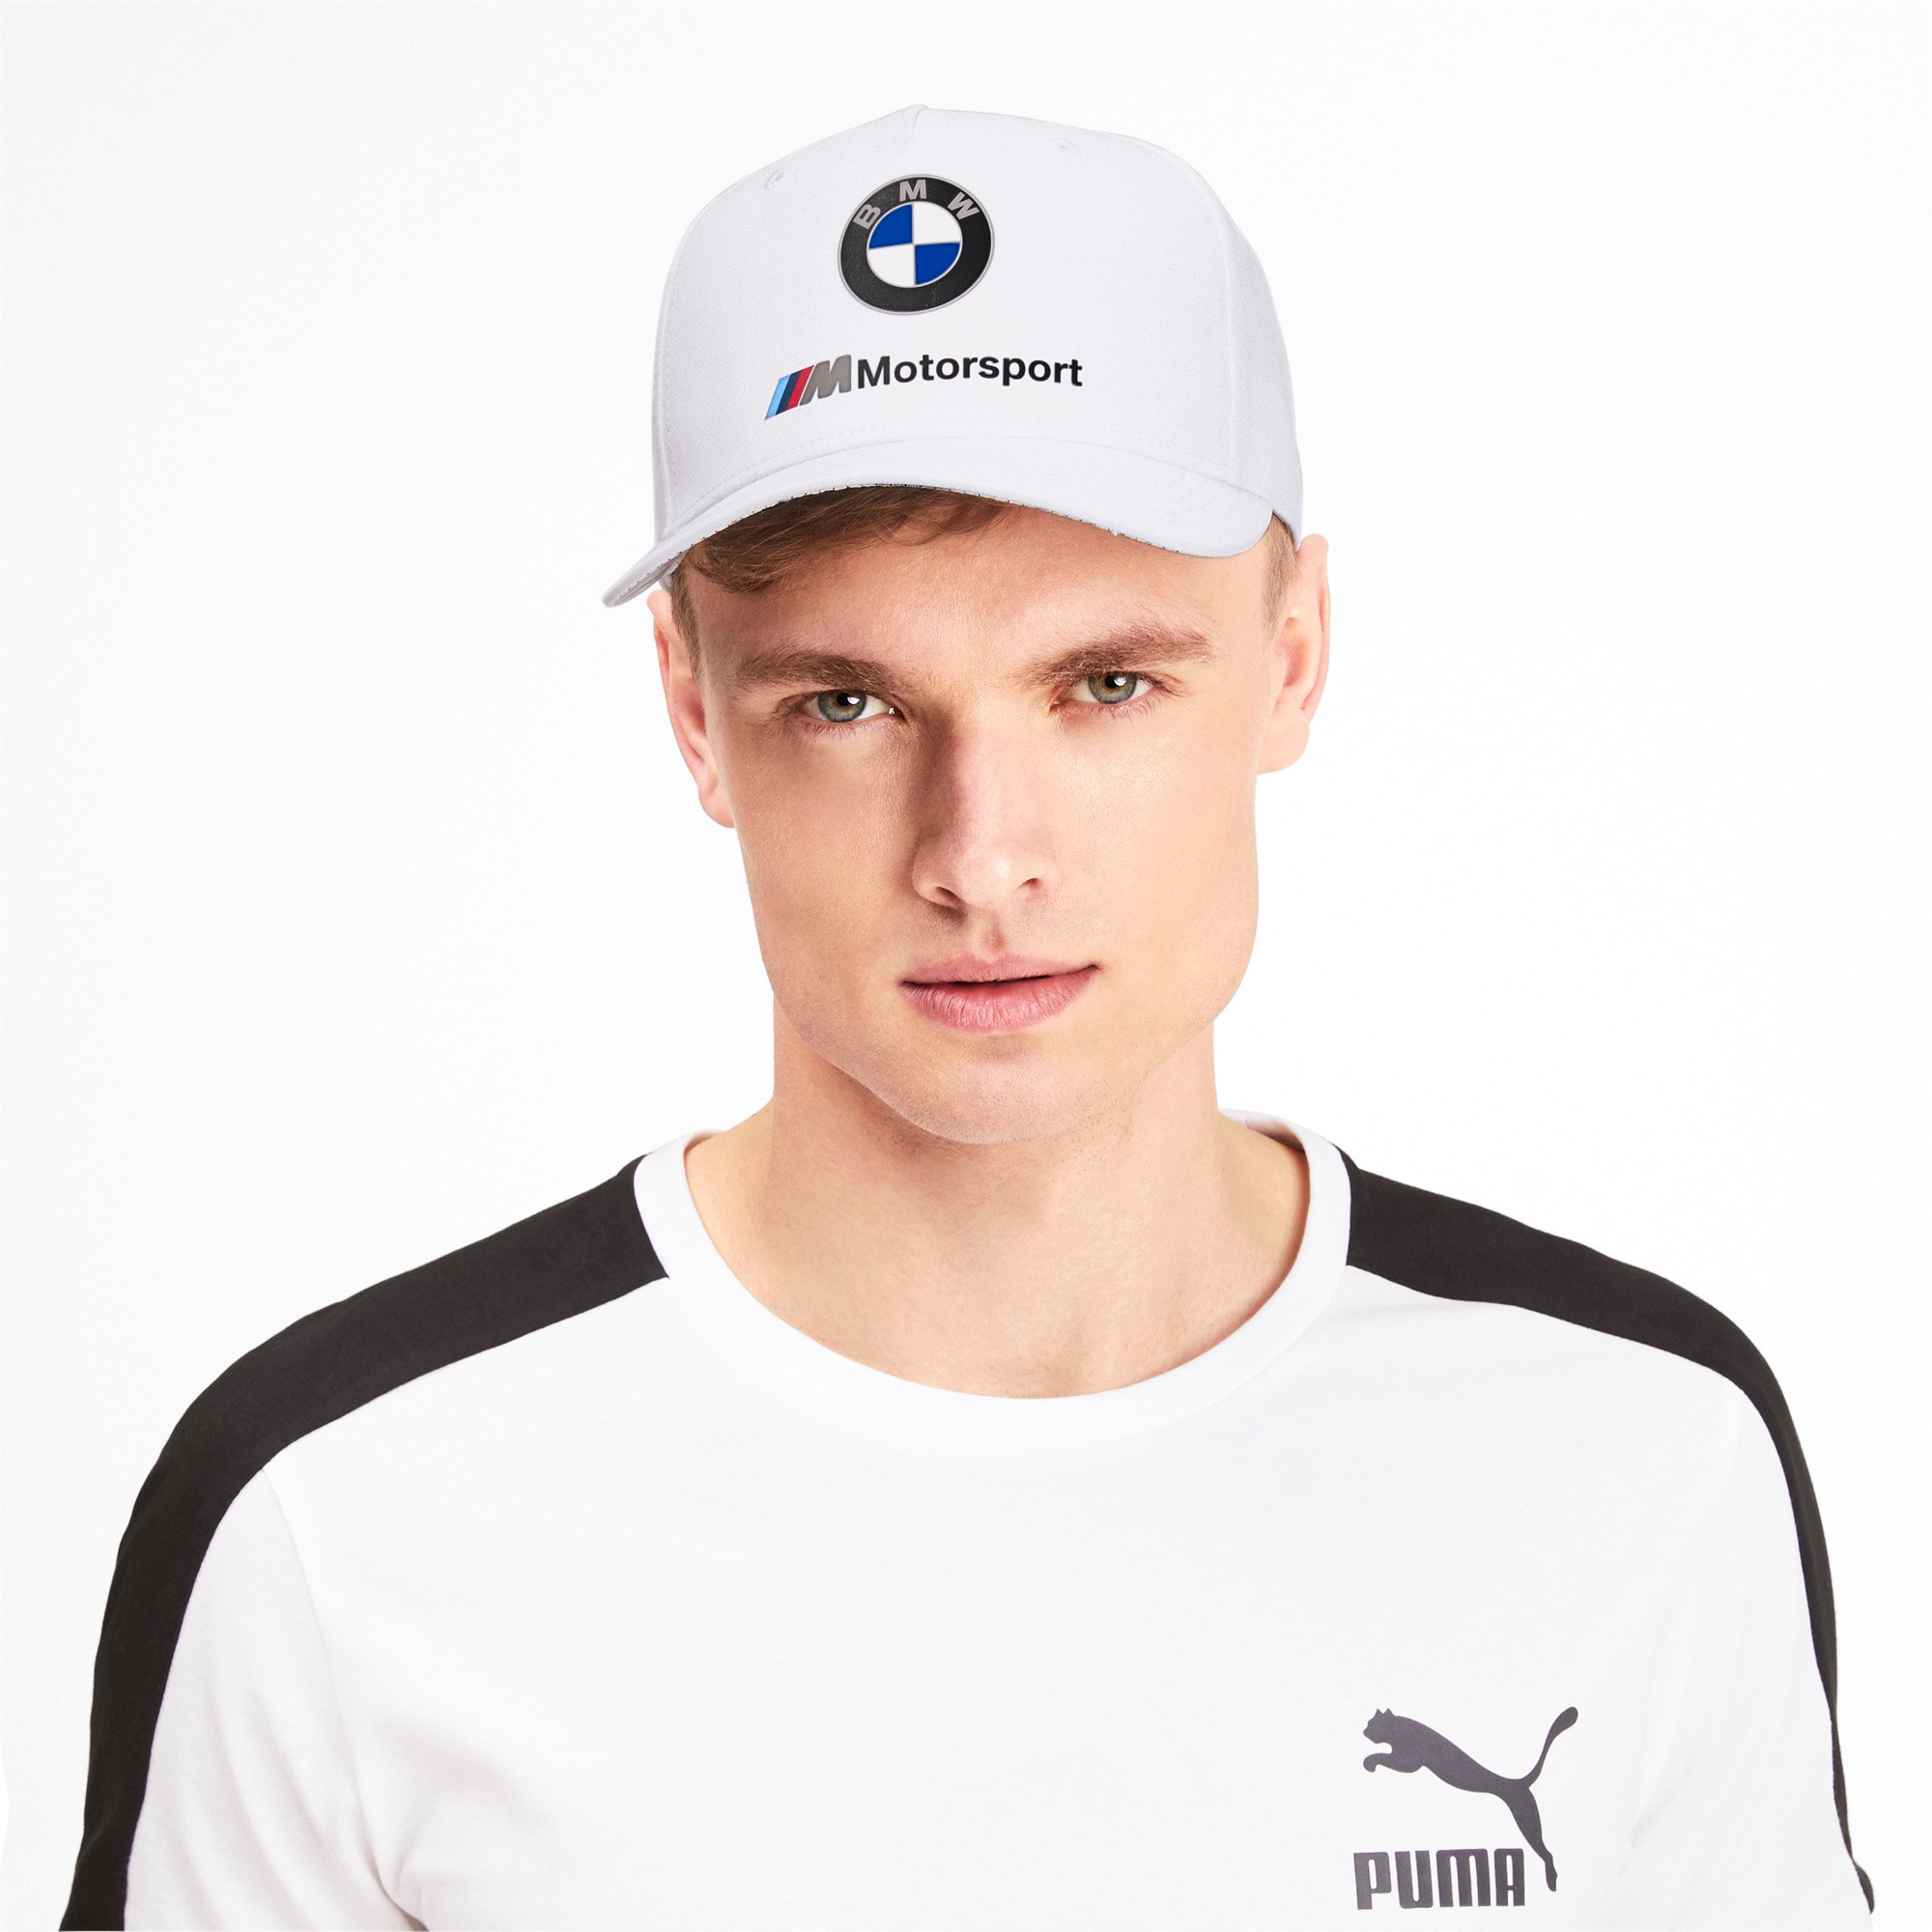 Thumbnail 2 of BMW M Motorsport Cap, Puma White, medium